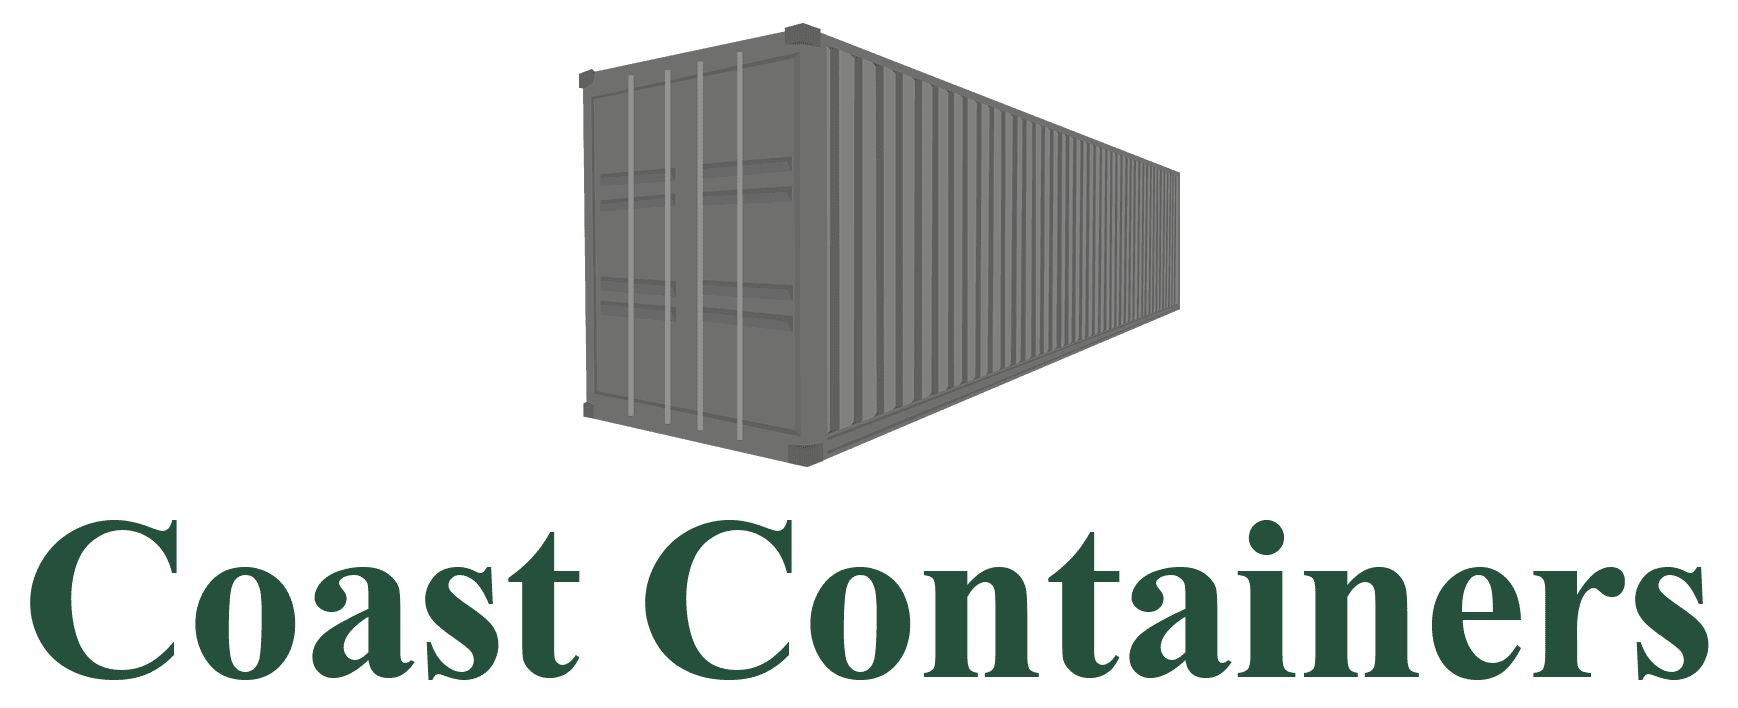 Coast Containers logo